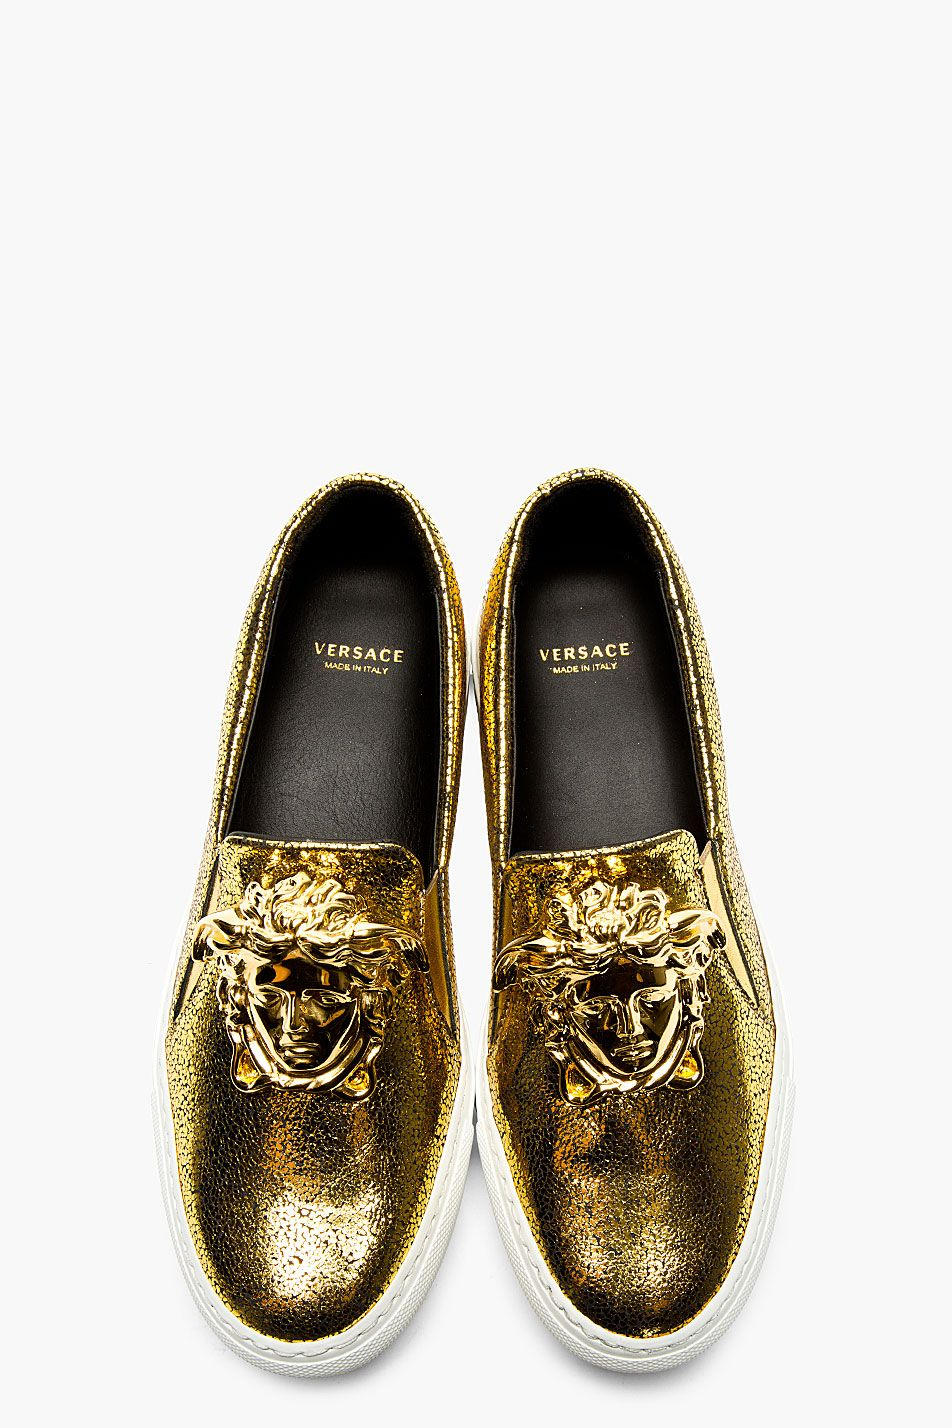 versace // gold medusa slip on shoes